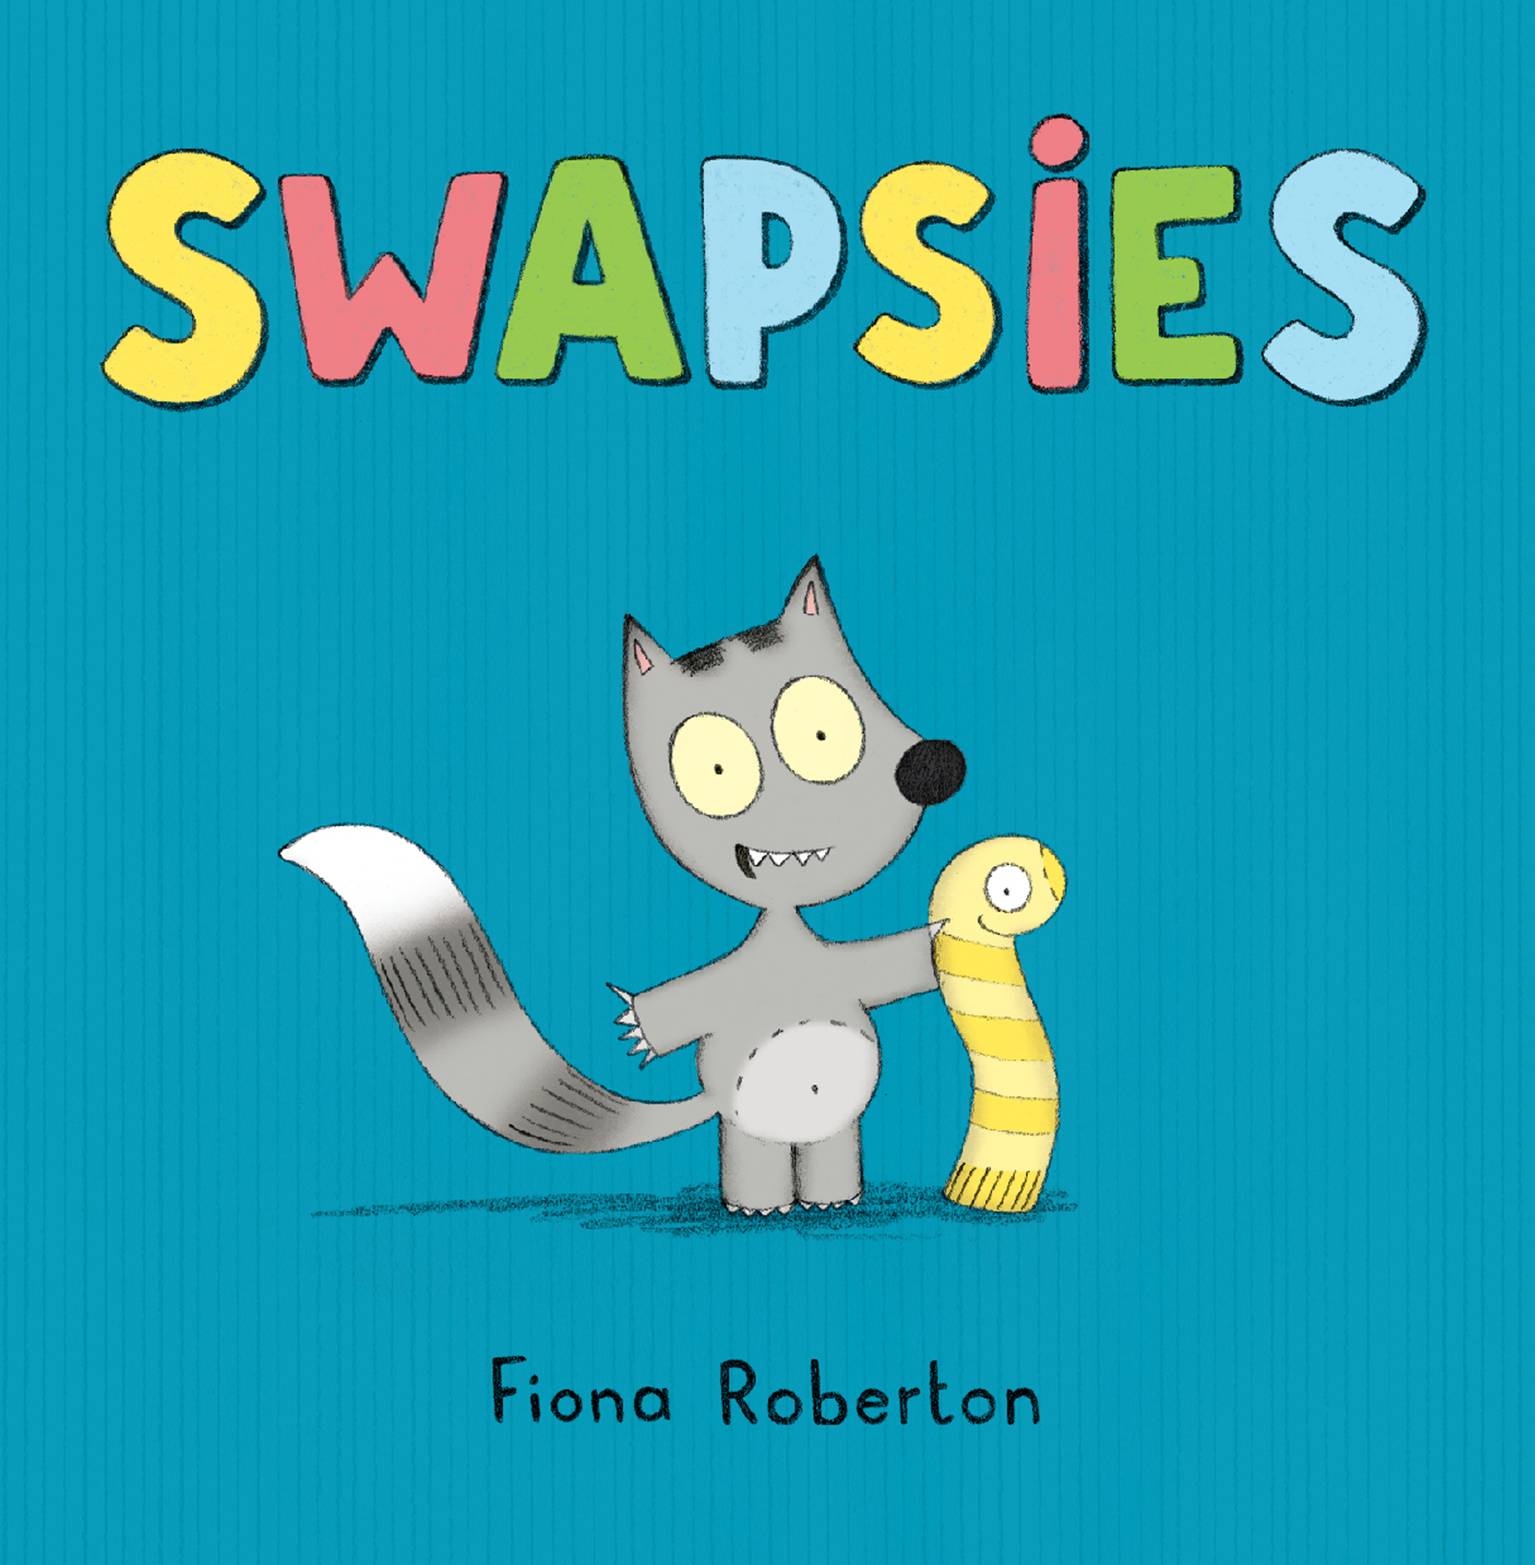 Swapsies_Portfolio_Cover.jpg